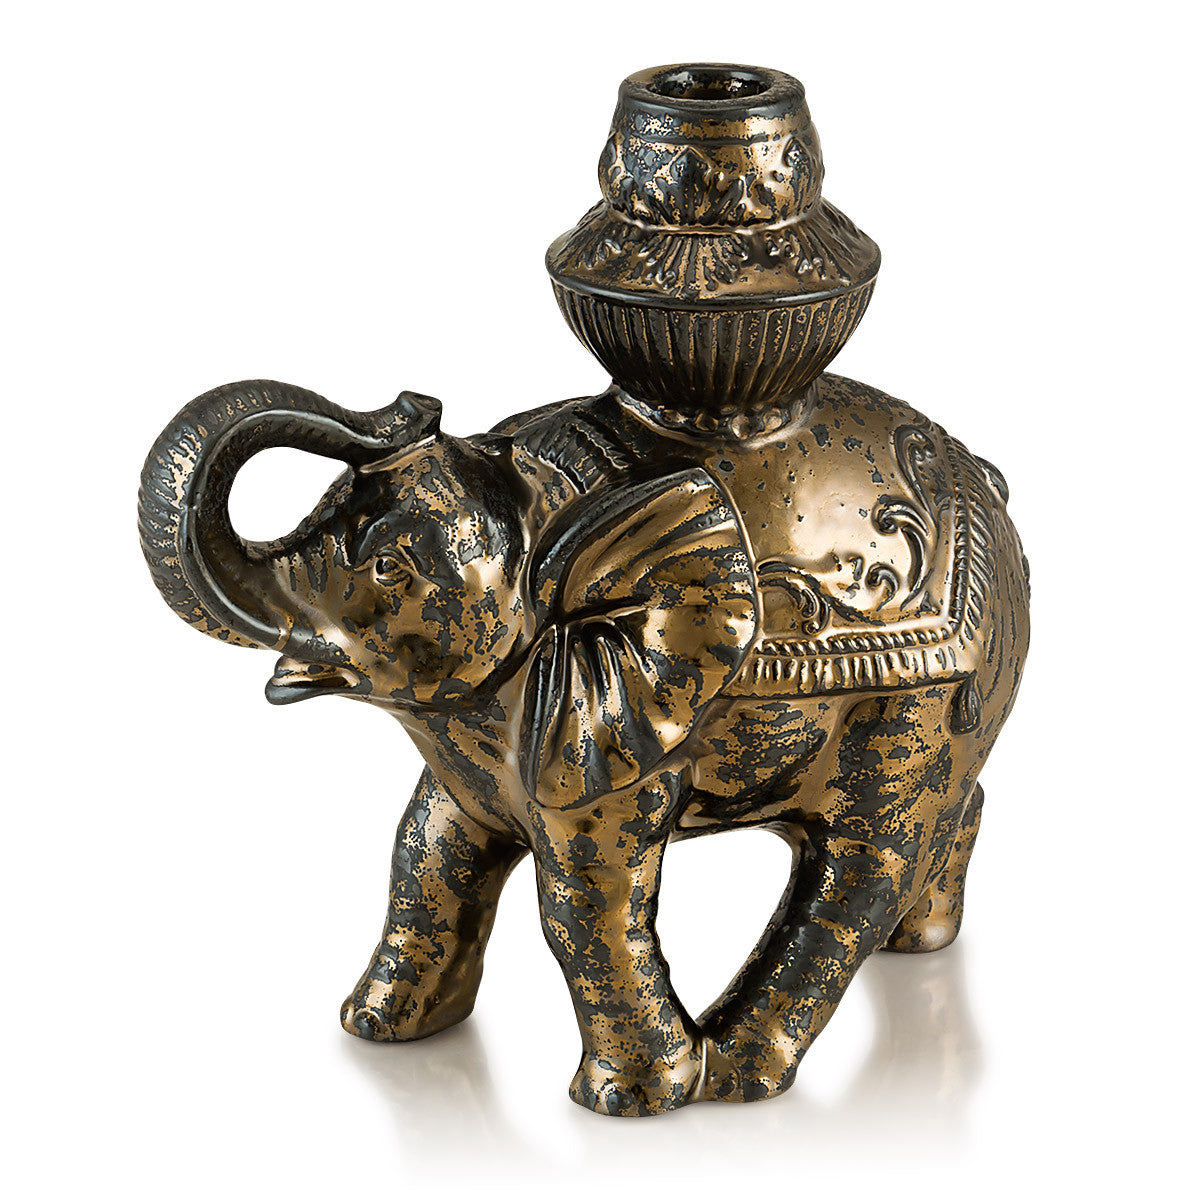 Caparisoned Elephant candle holder